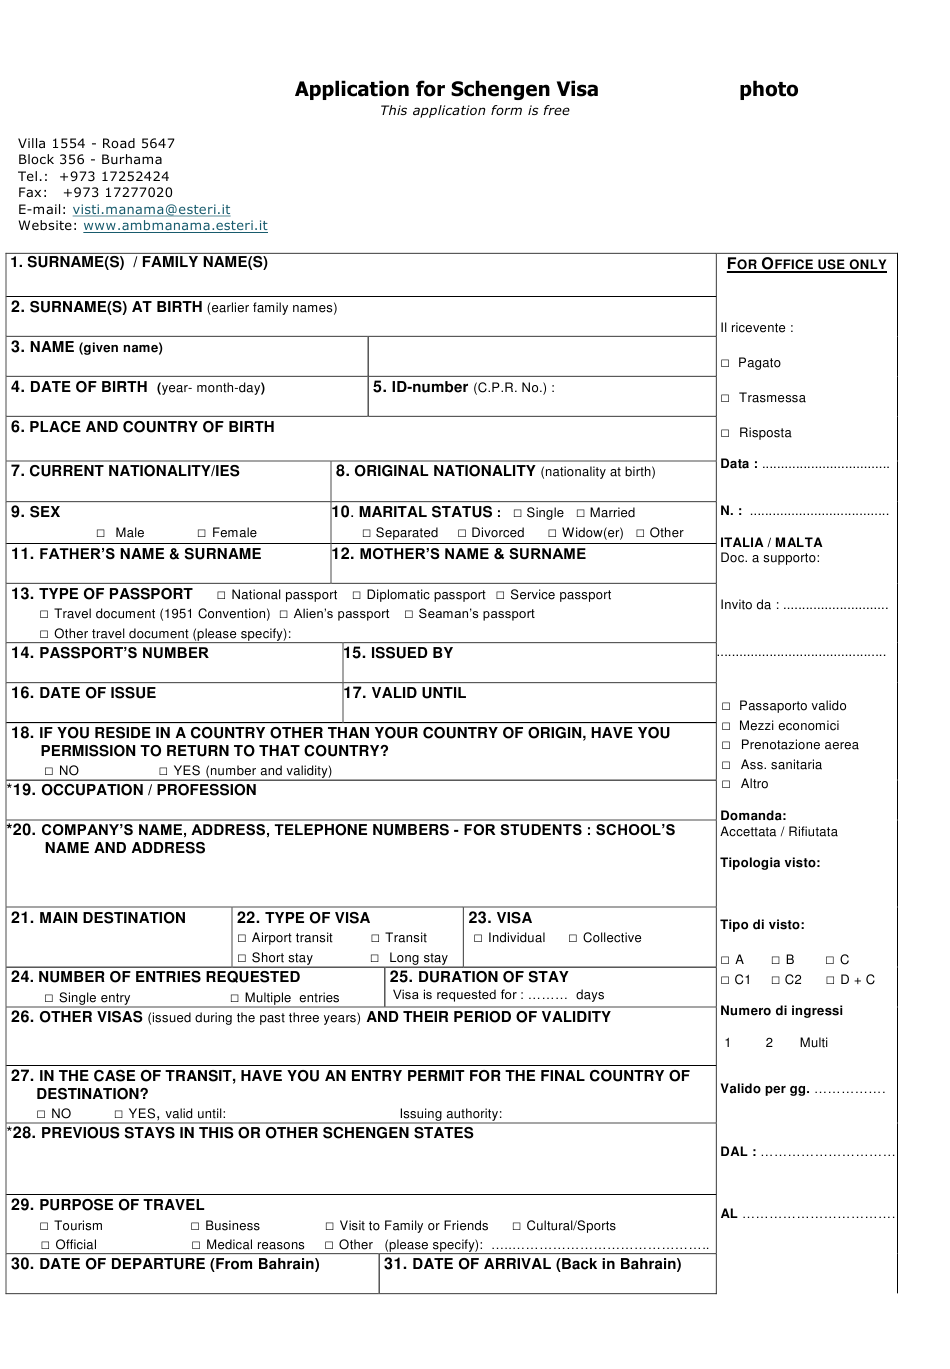 Application Form For Schengen Visa Embassy Of Italy In Manama Download Printable Pdf Templateroller